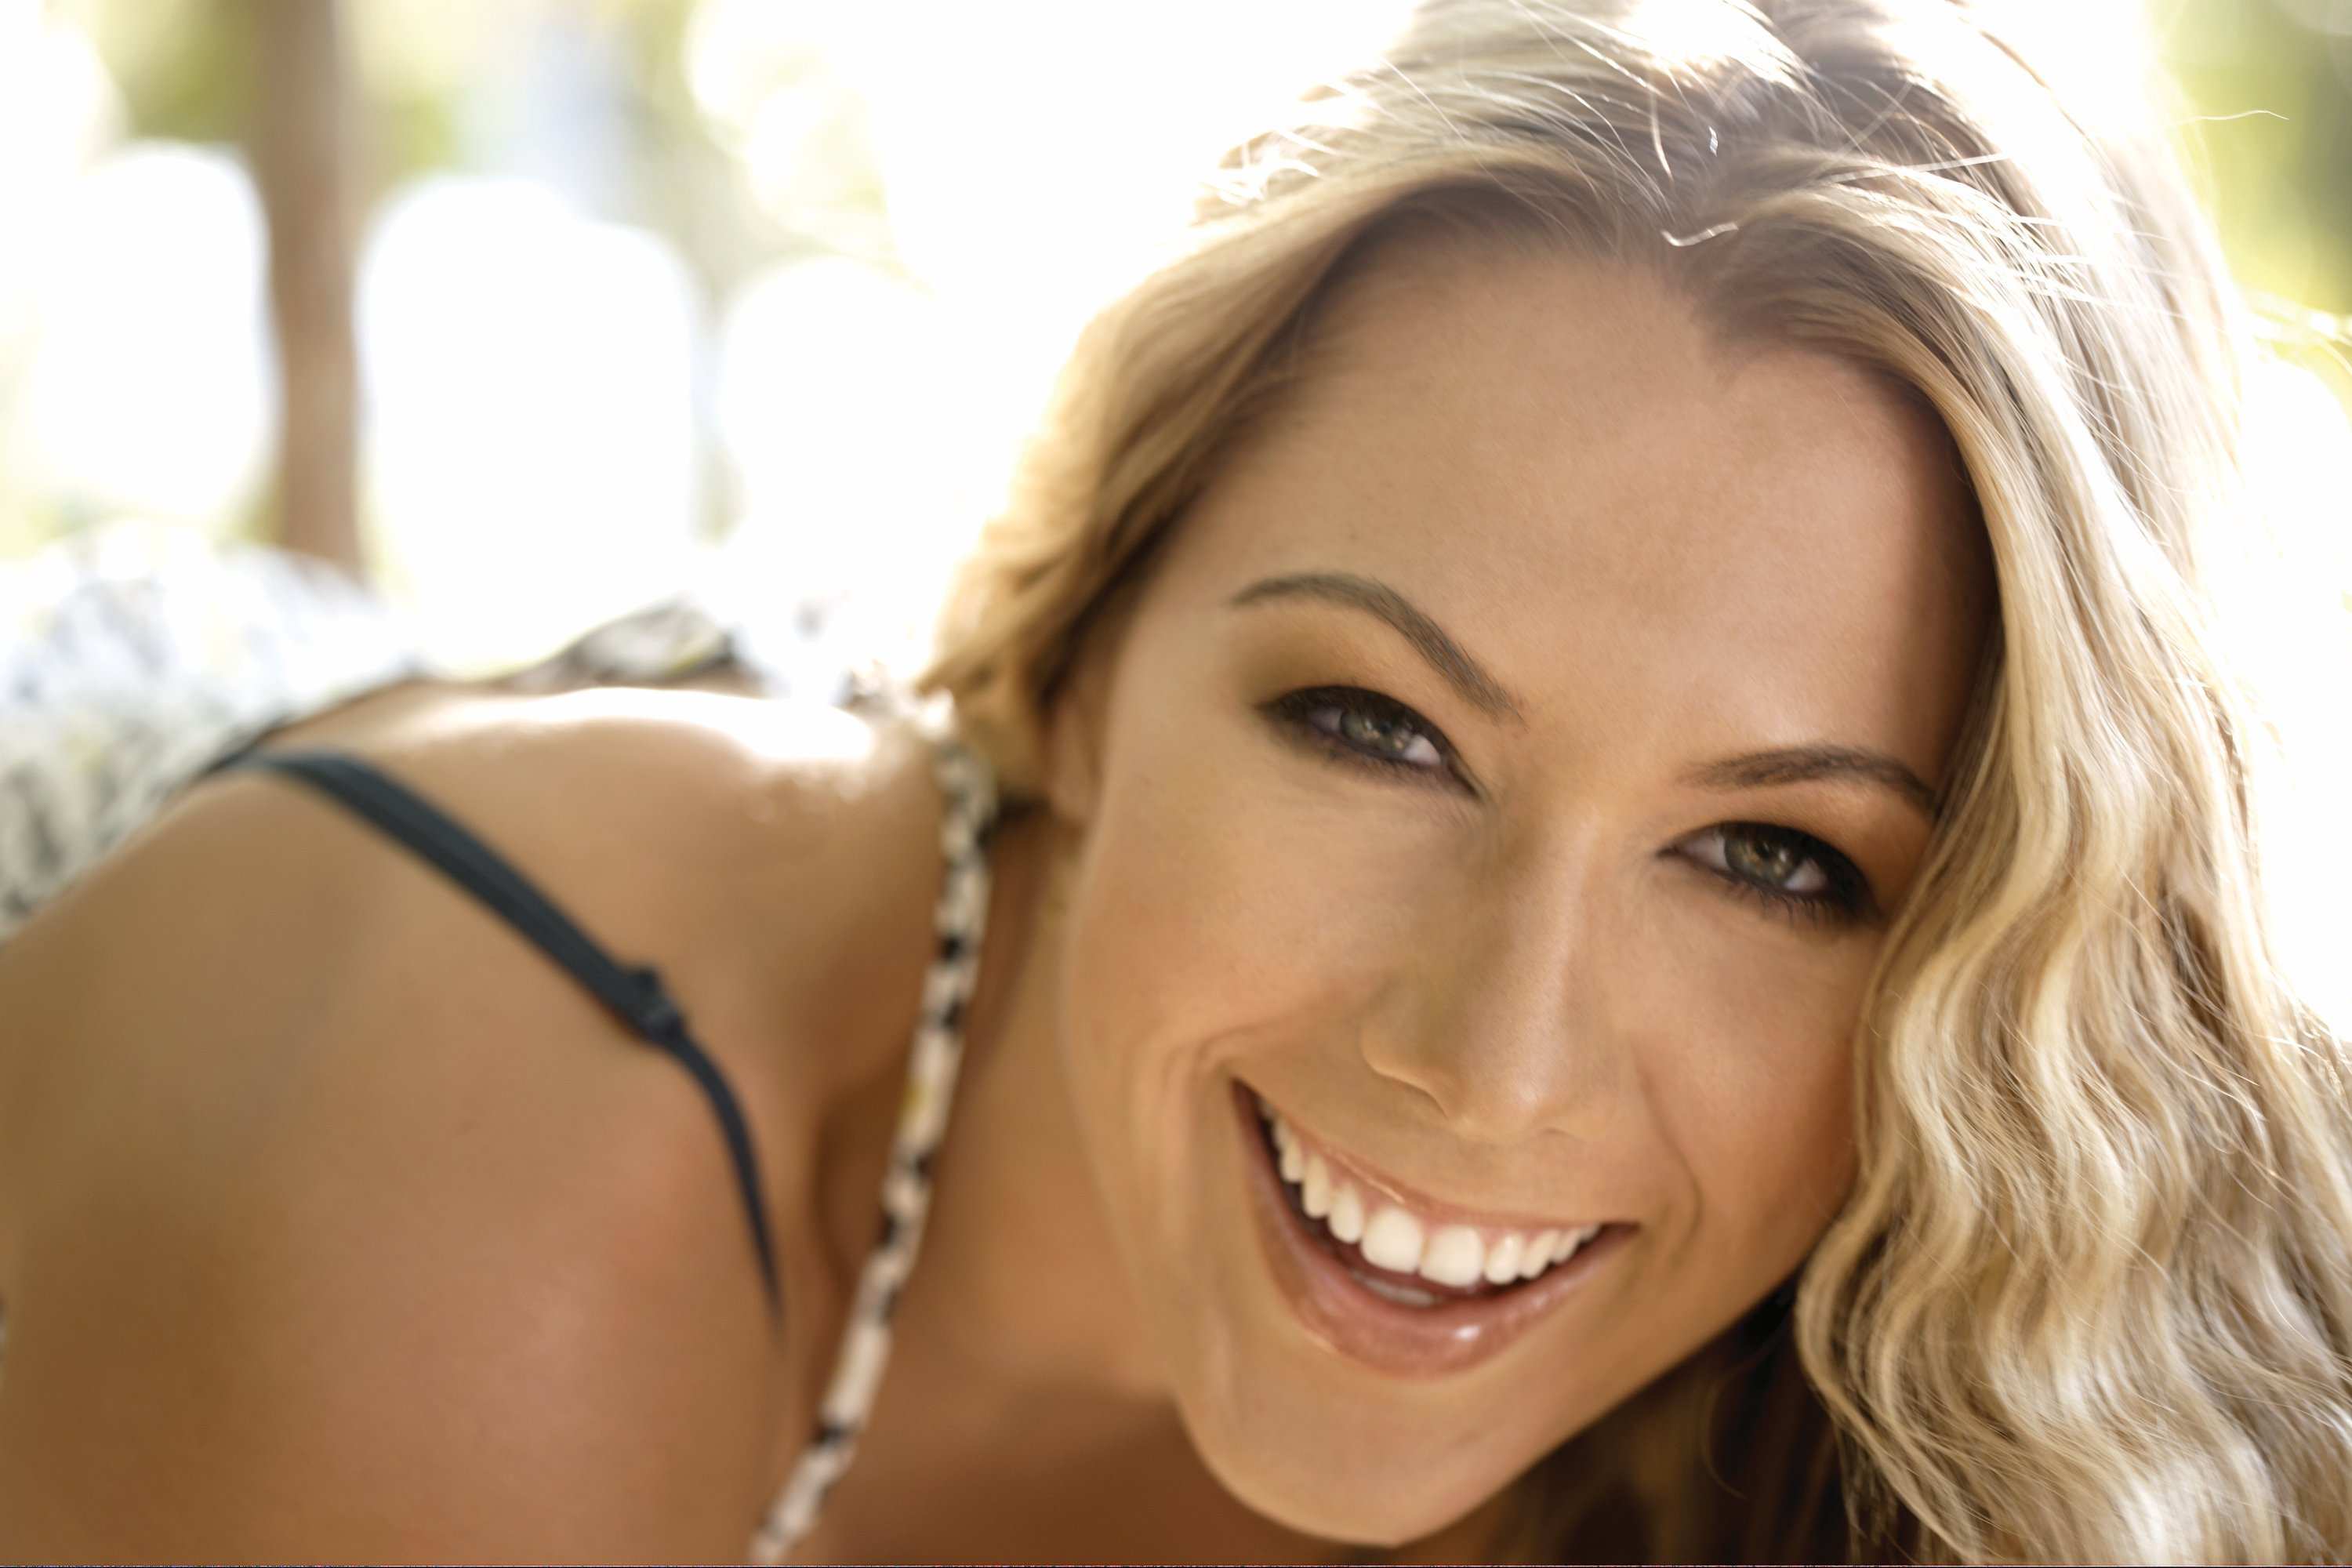 Colbie Caillat Images